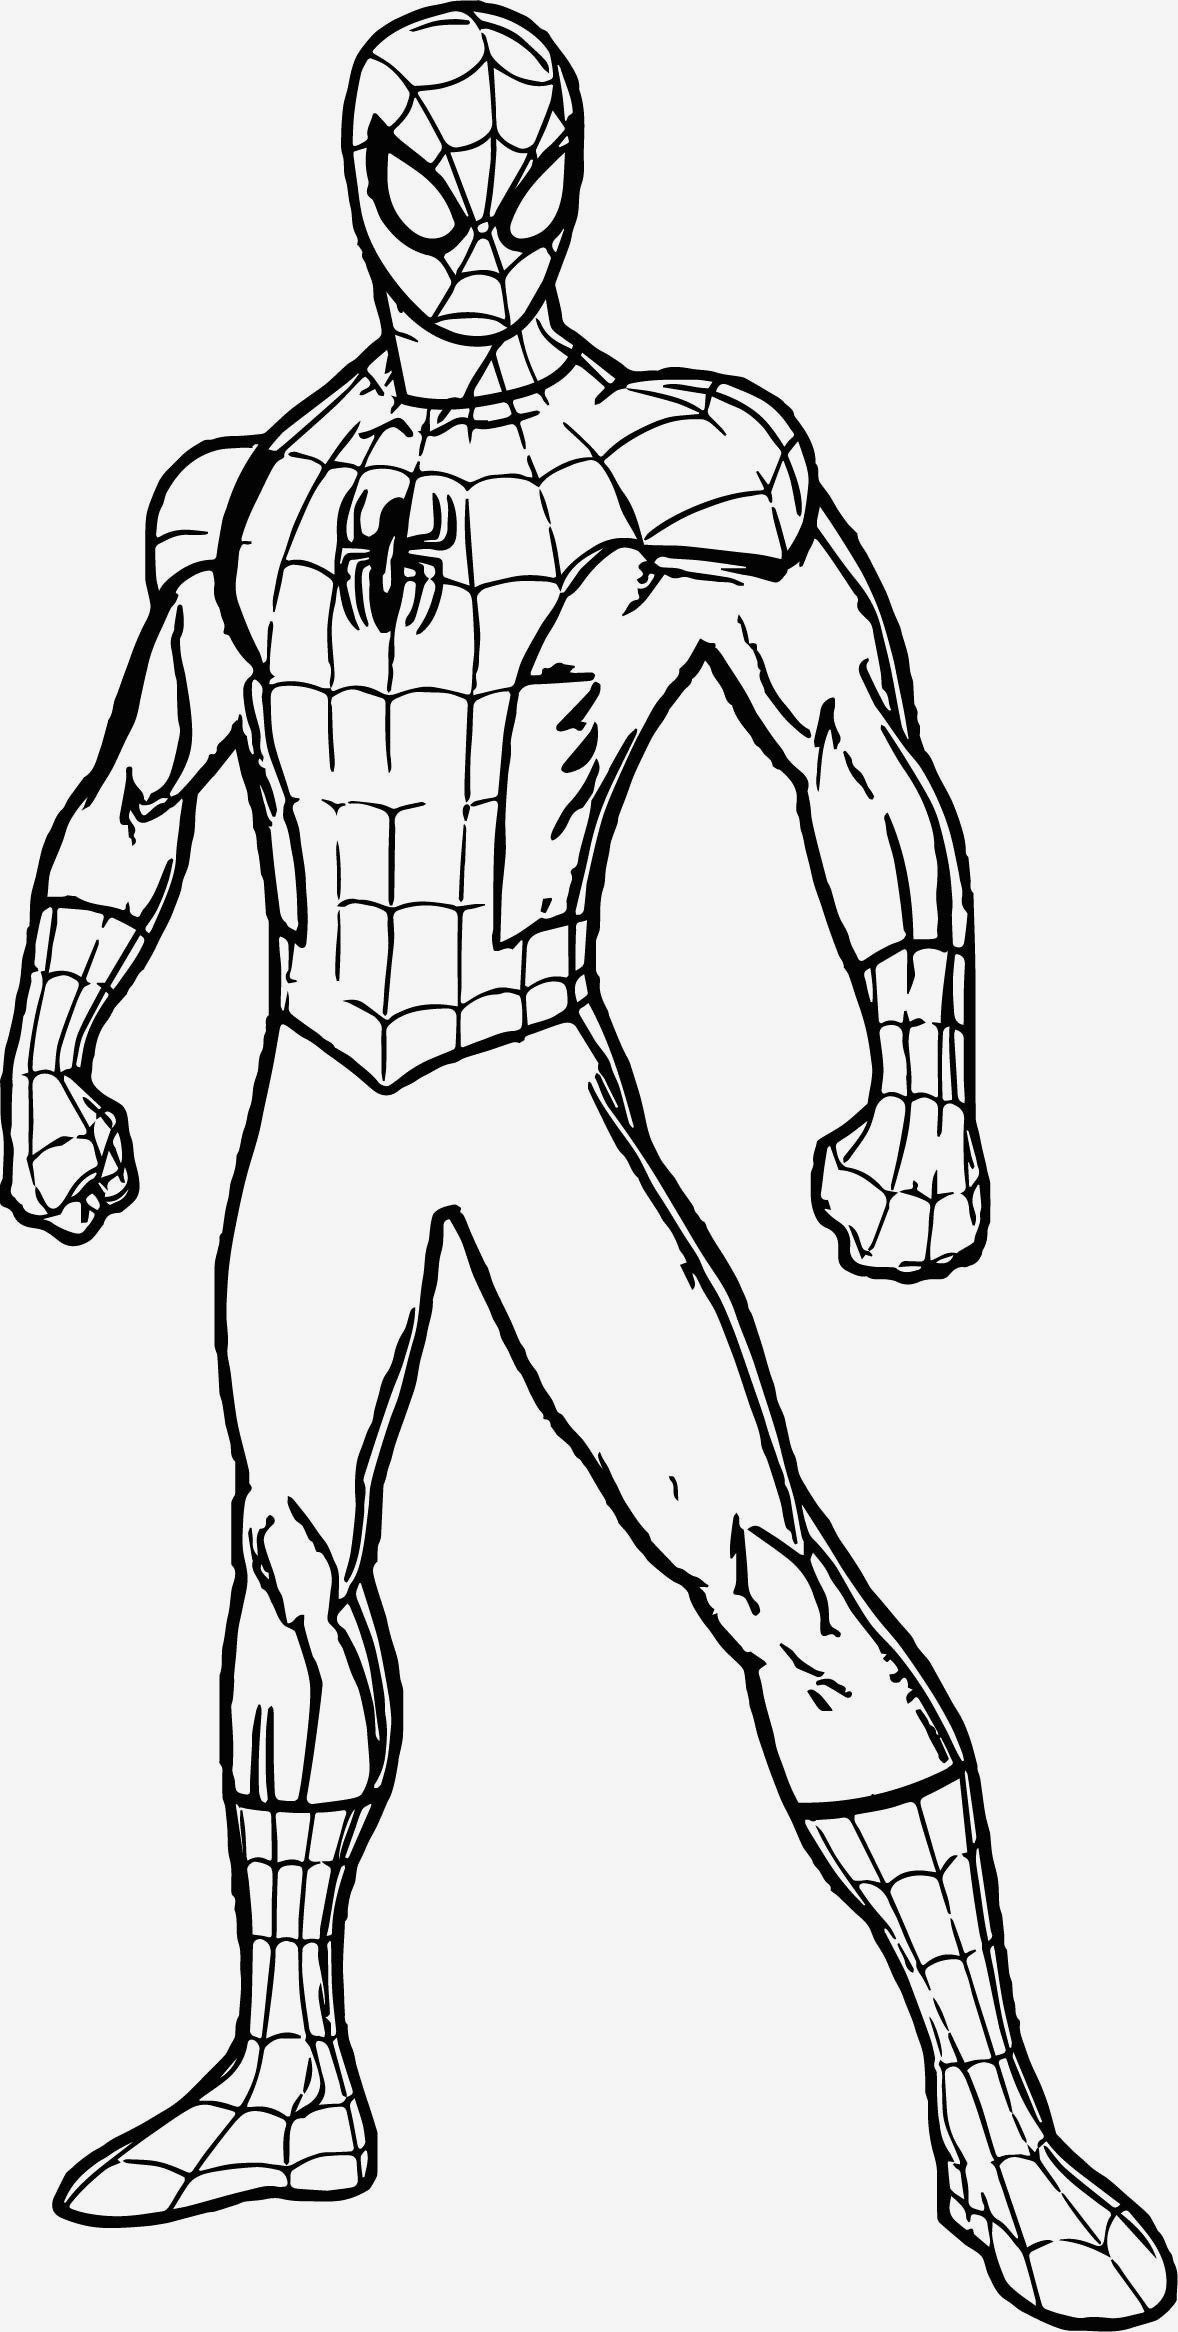 Marvelous Image Of Free Spiderman Coloring Pages Davemelillo Com Avengers Coloring Pages Superhero Coloring Pages Avengers Coloring